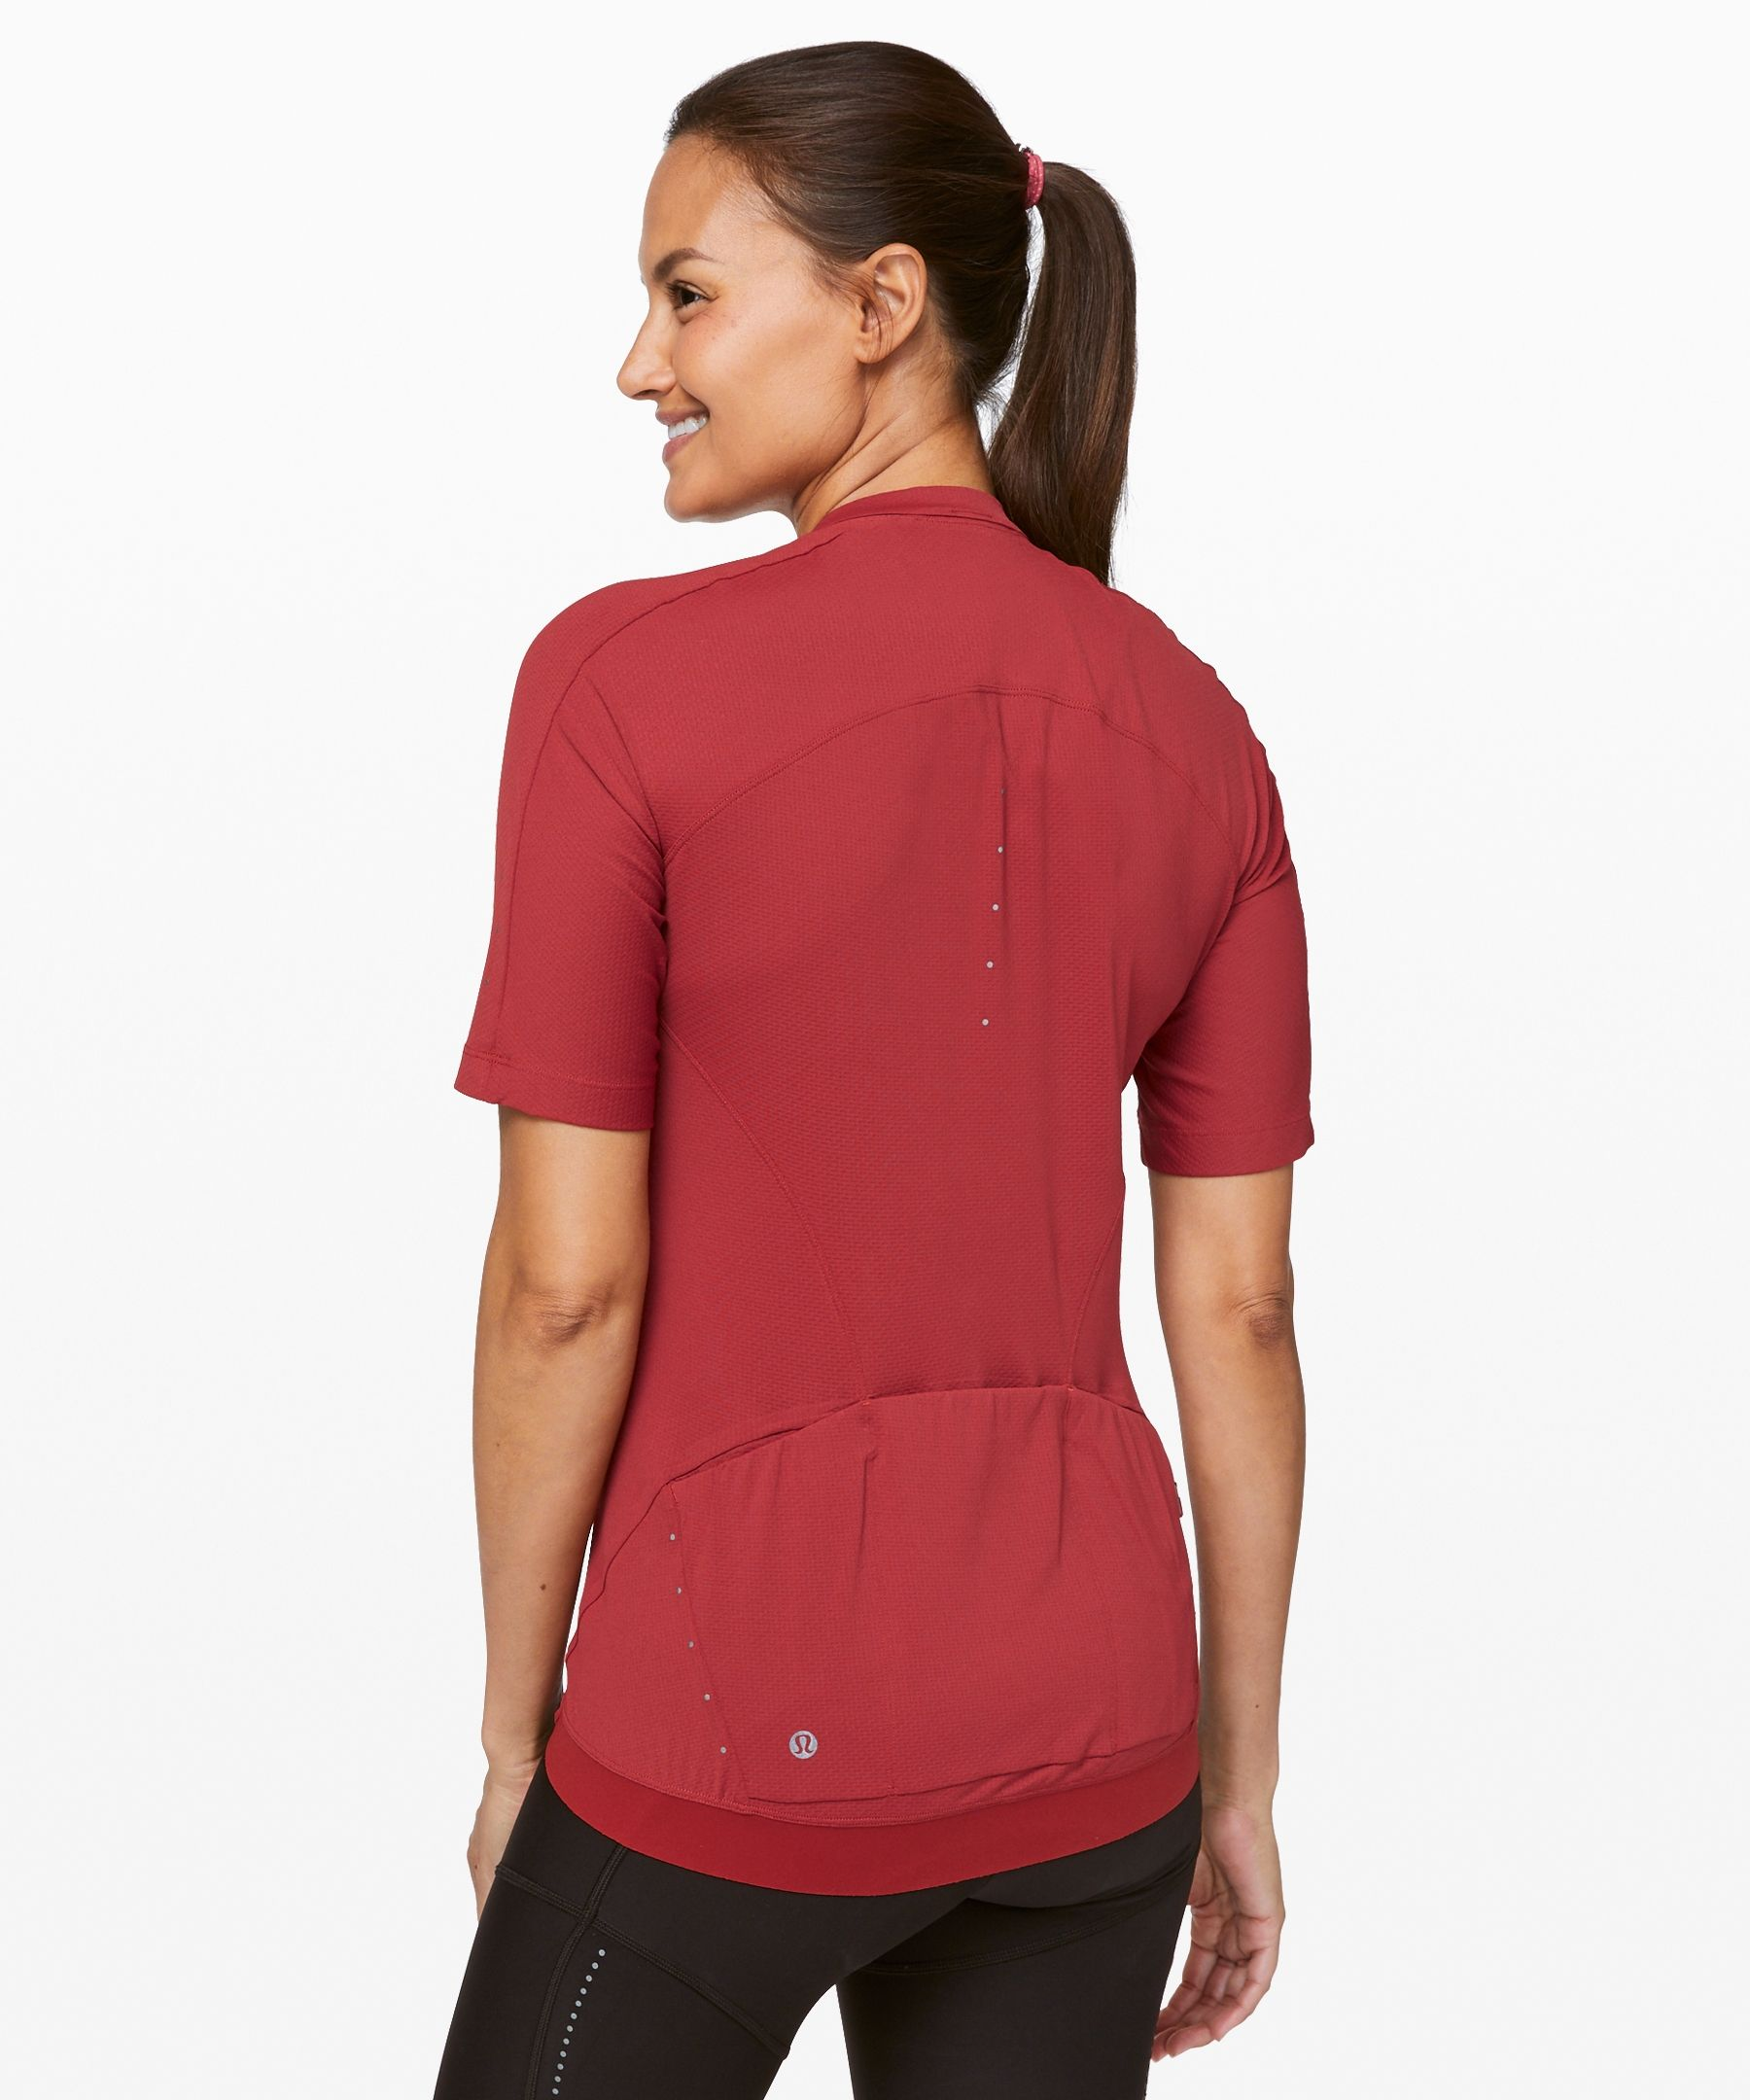 City To Summit Cycling Jersey Women S Short Sleeve Tops Short Sleeve Tops Women Lululemon Women Downhill Clothing